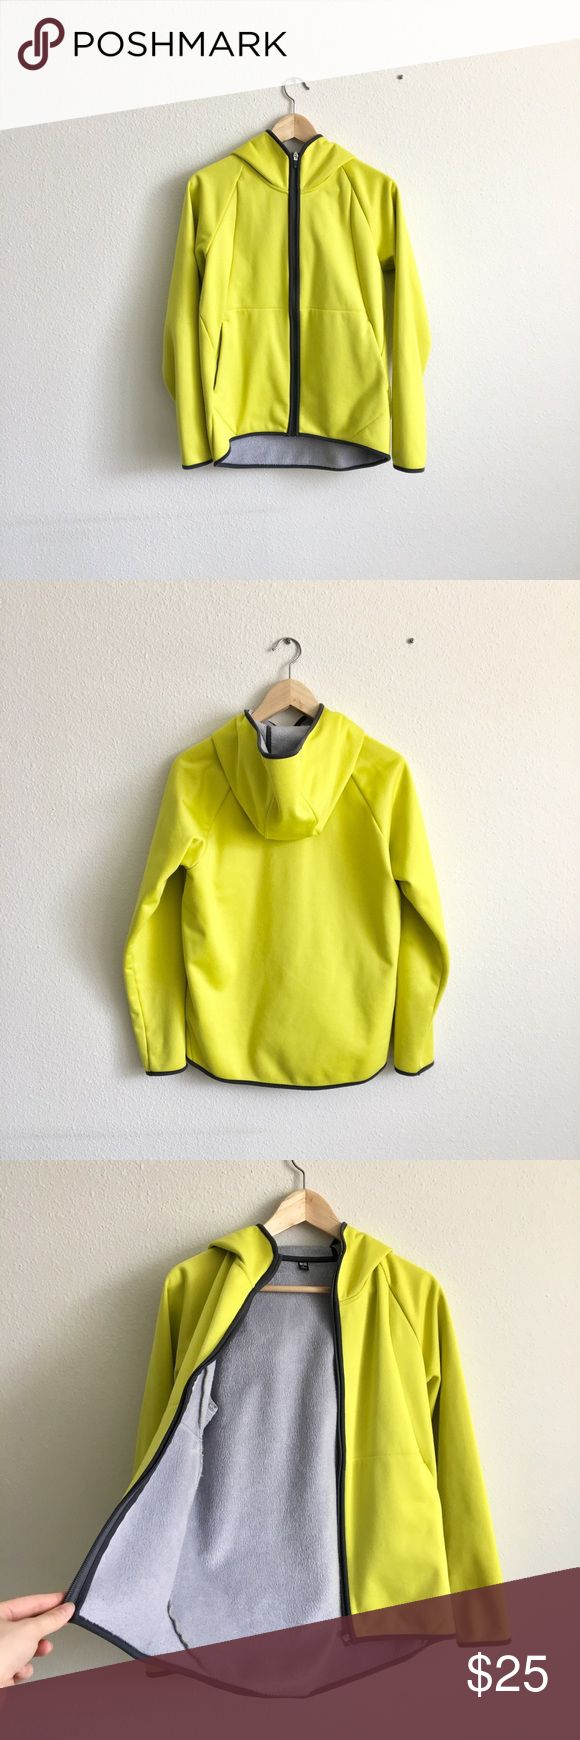 Neon Yellow Uniqlo Jacket A great jacket for spring weather. Warm, furry lining inside. Uniqlo Jackets & Coats